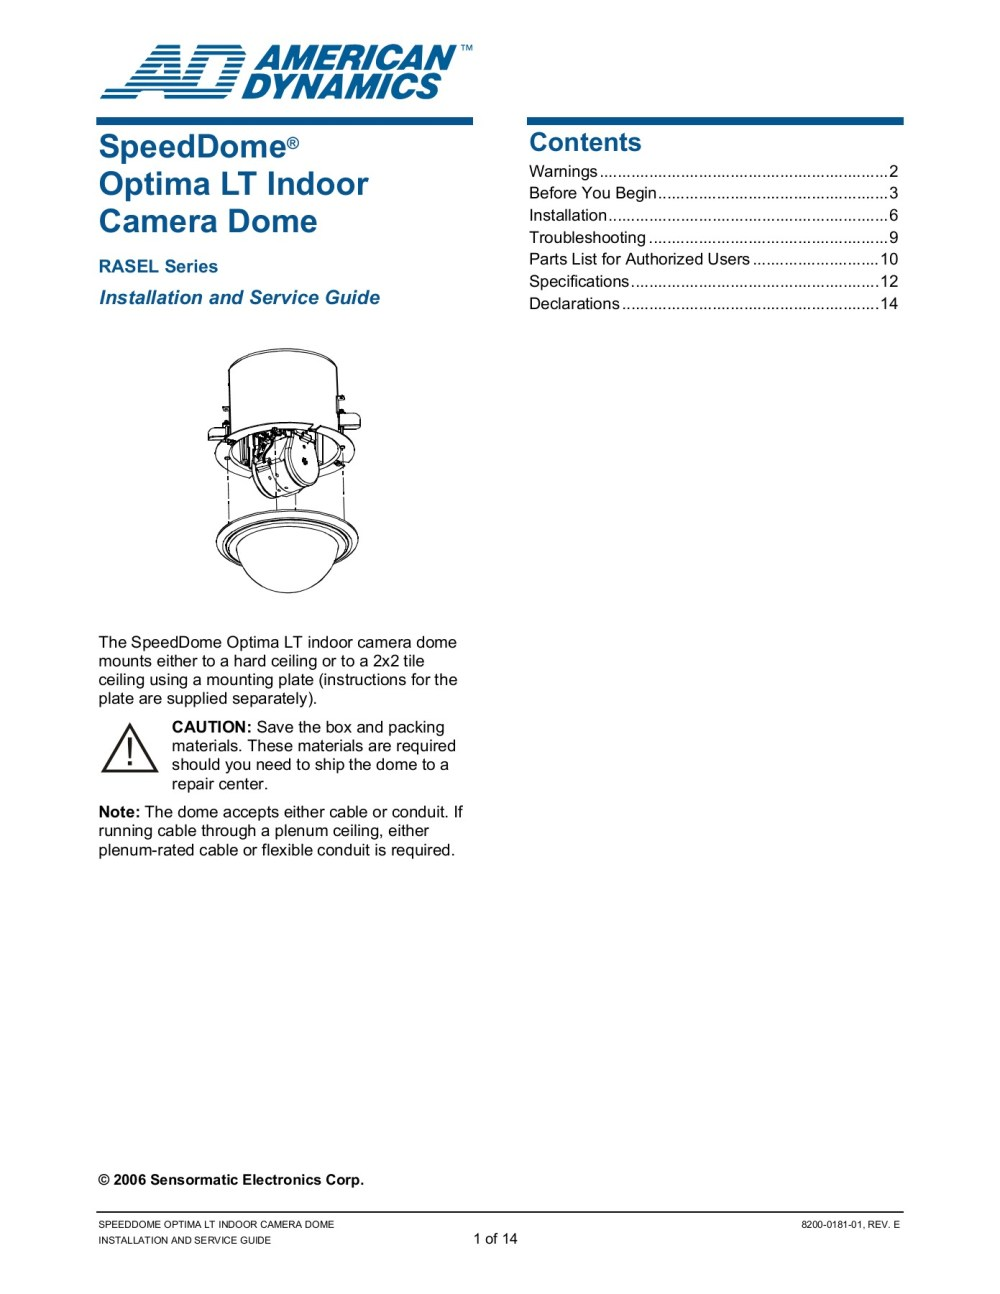 medium resolution of speeddome optima lt indoor camera dome 8200 0181 01 rev e installation and service guide 2 of 14 warnings please review the following warnings before you